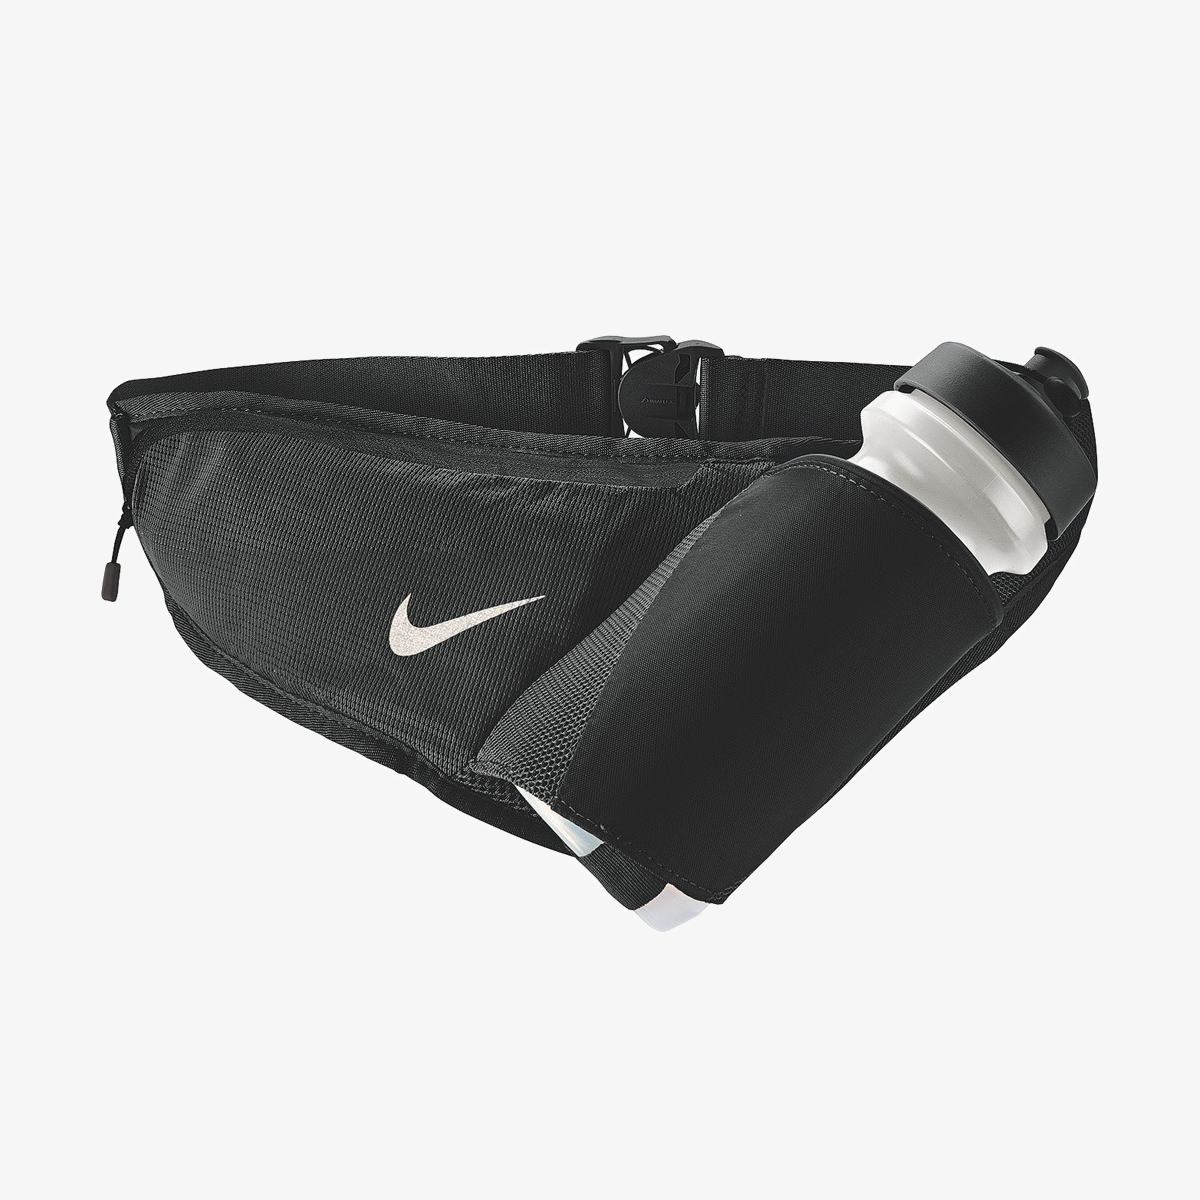 Пояс для бега Nike LARGE BOTTLE BELT 22OZ